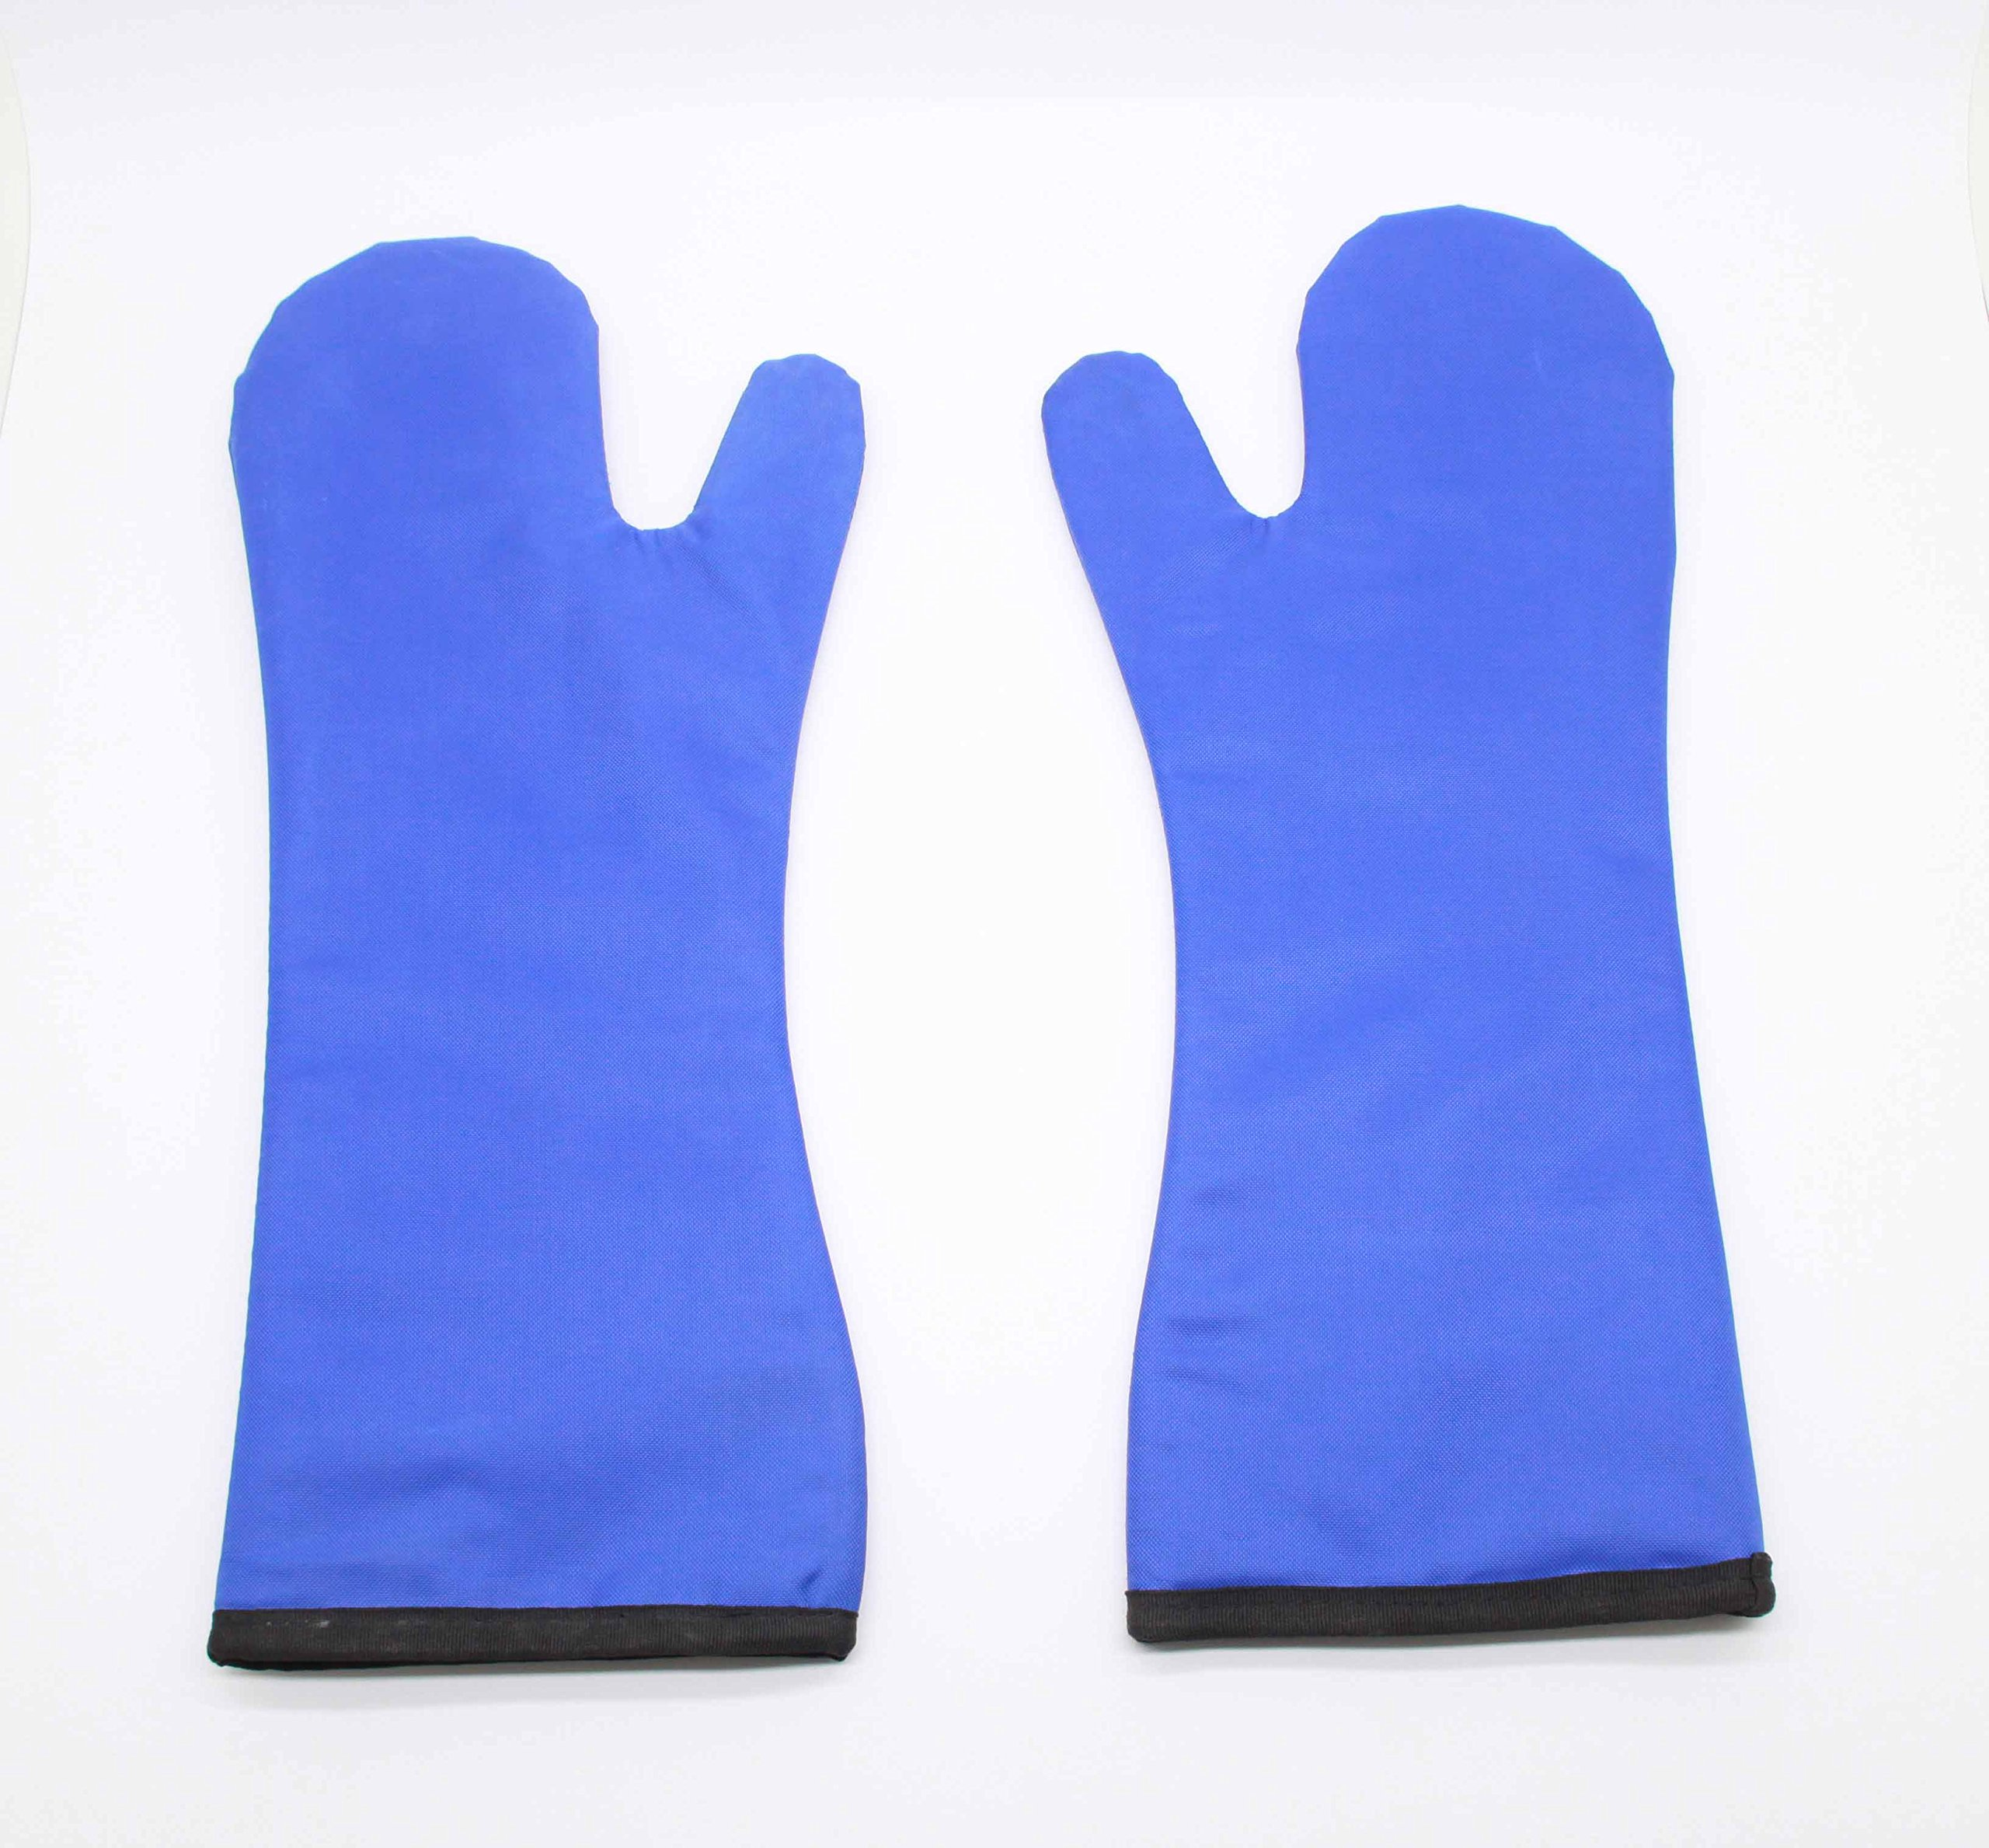 FixtureDisplays Medical X Ray Radiation Lead Protective Gloves for X-Ray MRI CT Radiation Protection 15458